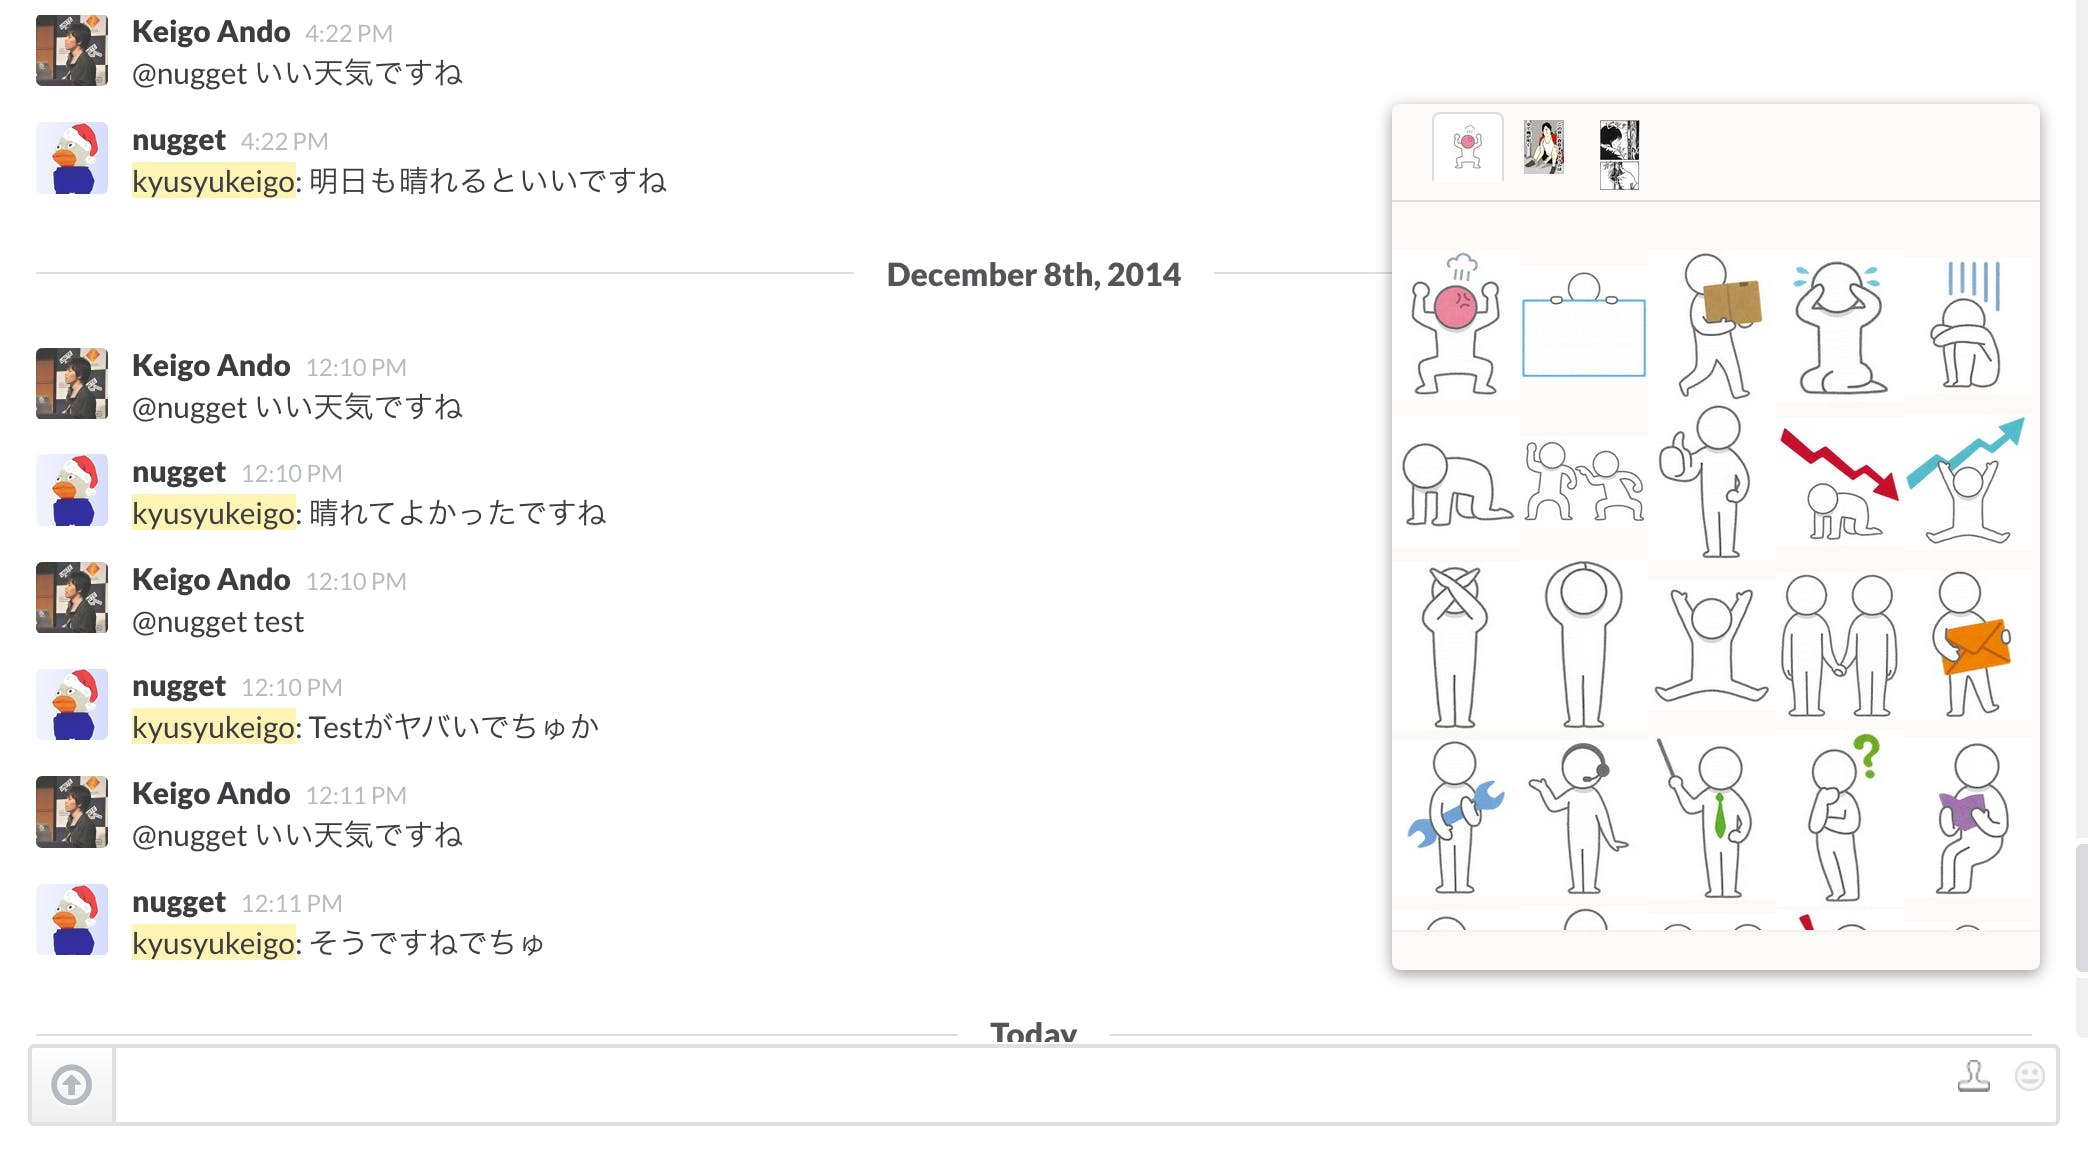 ss 2014-12-12 17.55.48.png